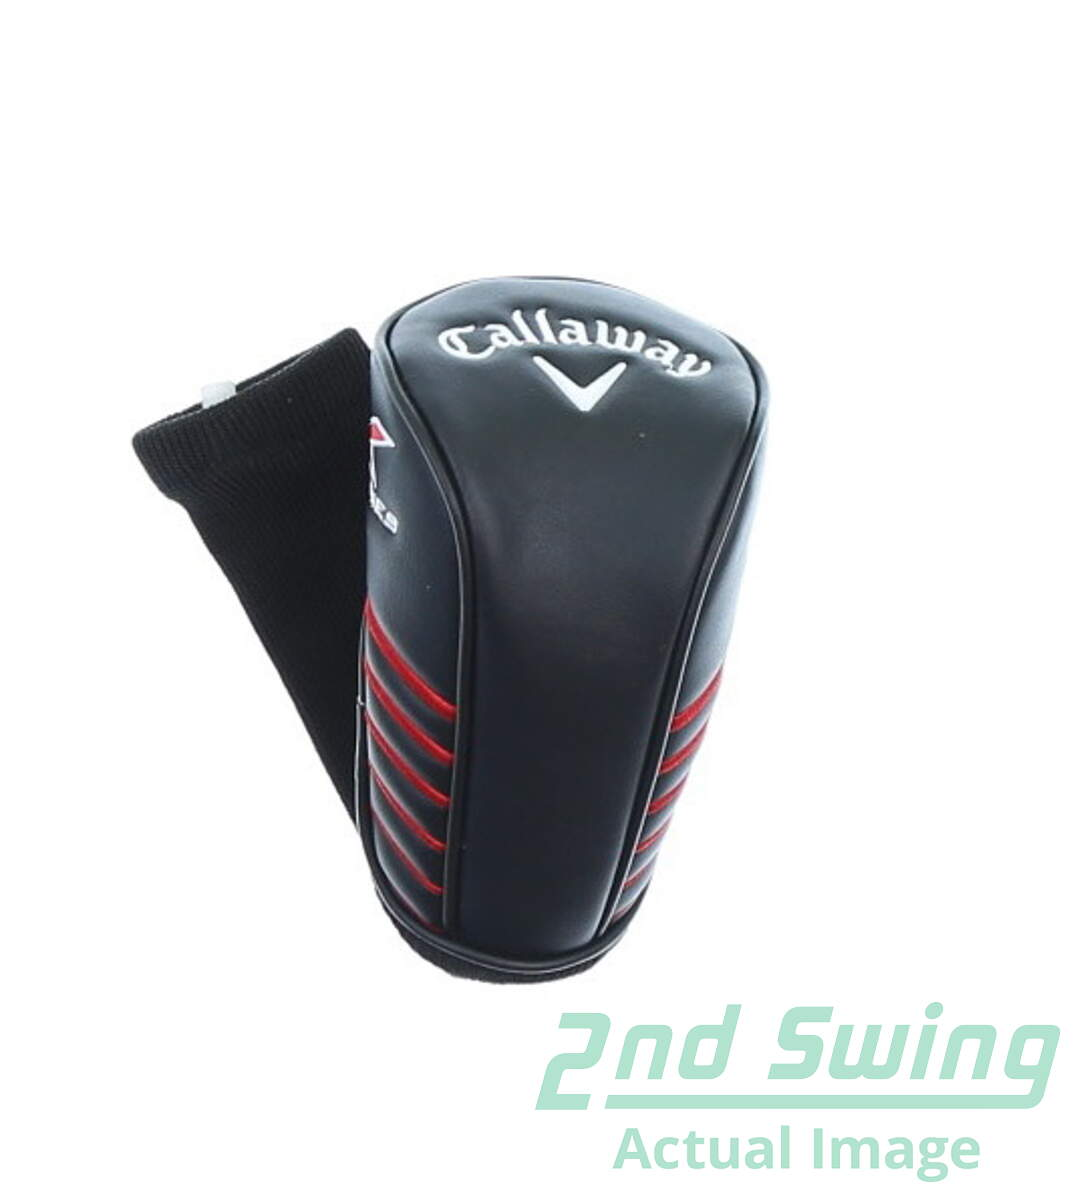 Used Callaway X Series Fairway Wood Headcover Redblack 2nd Swing Golf